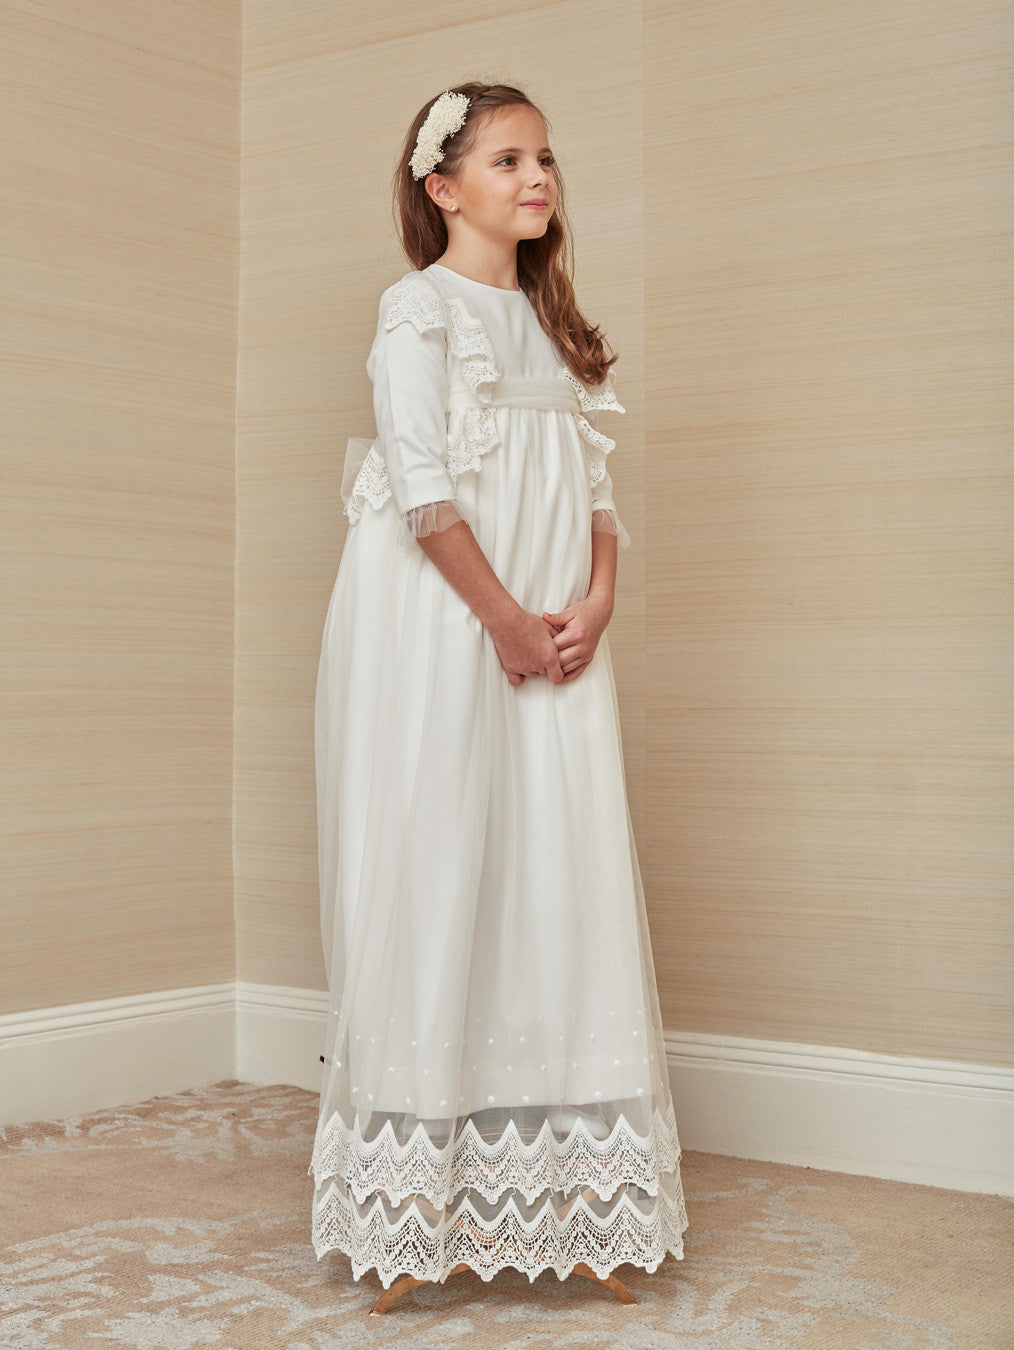 Vintage Inspired First Communion Dress